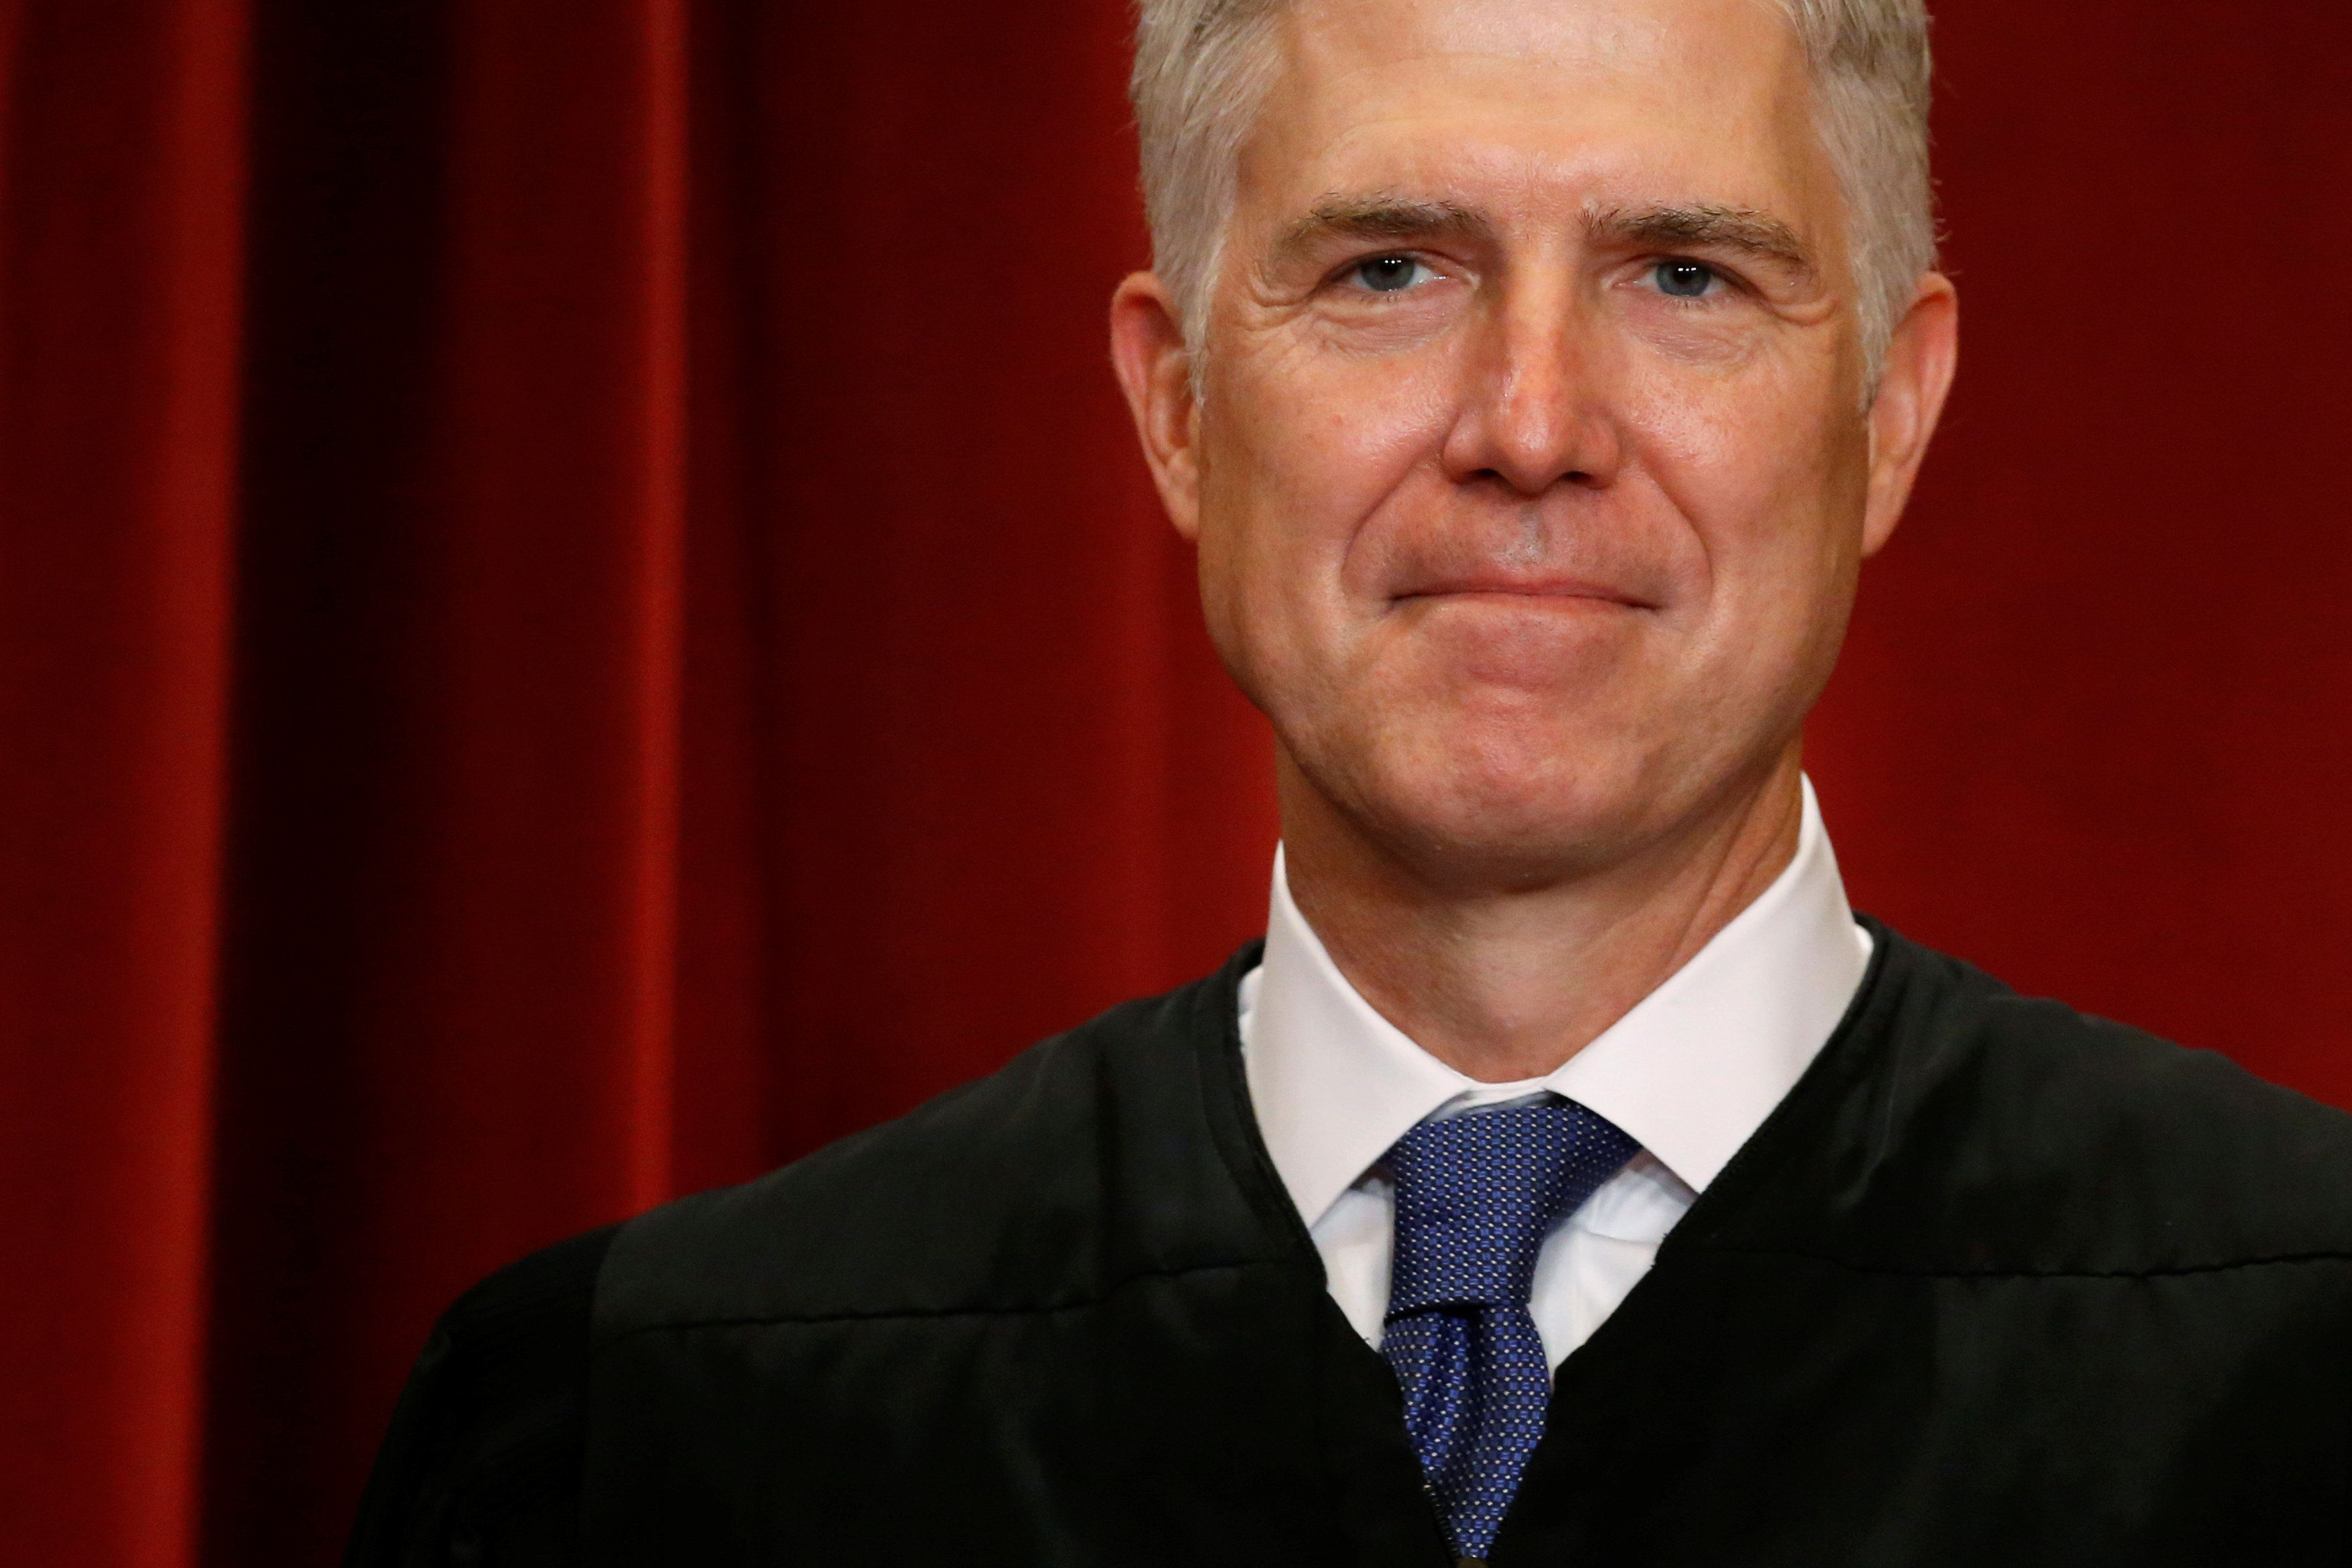 U.S. Supreme Court Justice Neil Gorsuch participates in taking a new family photo with his fellow justices at the Supreme Court building in Washington, D.C., U.S., June 1, 2017. REUTERS/Jonathan Ernst